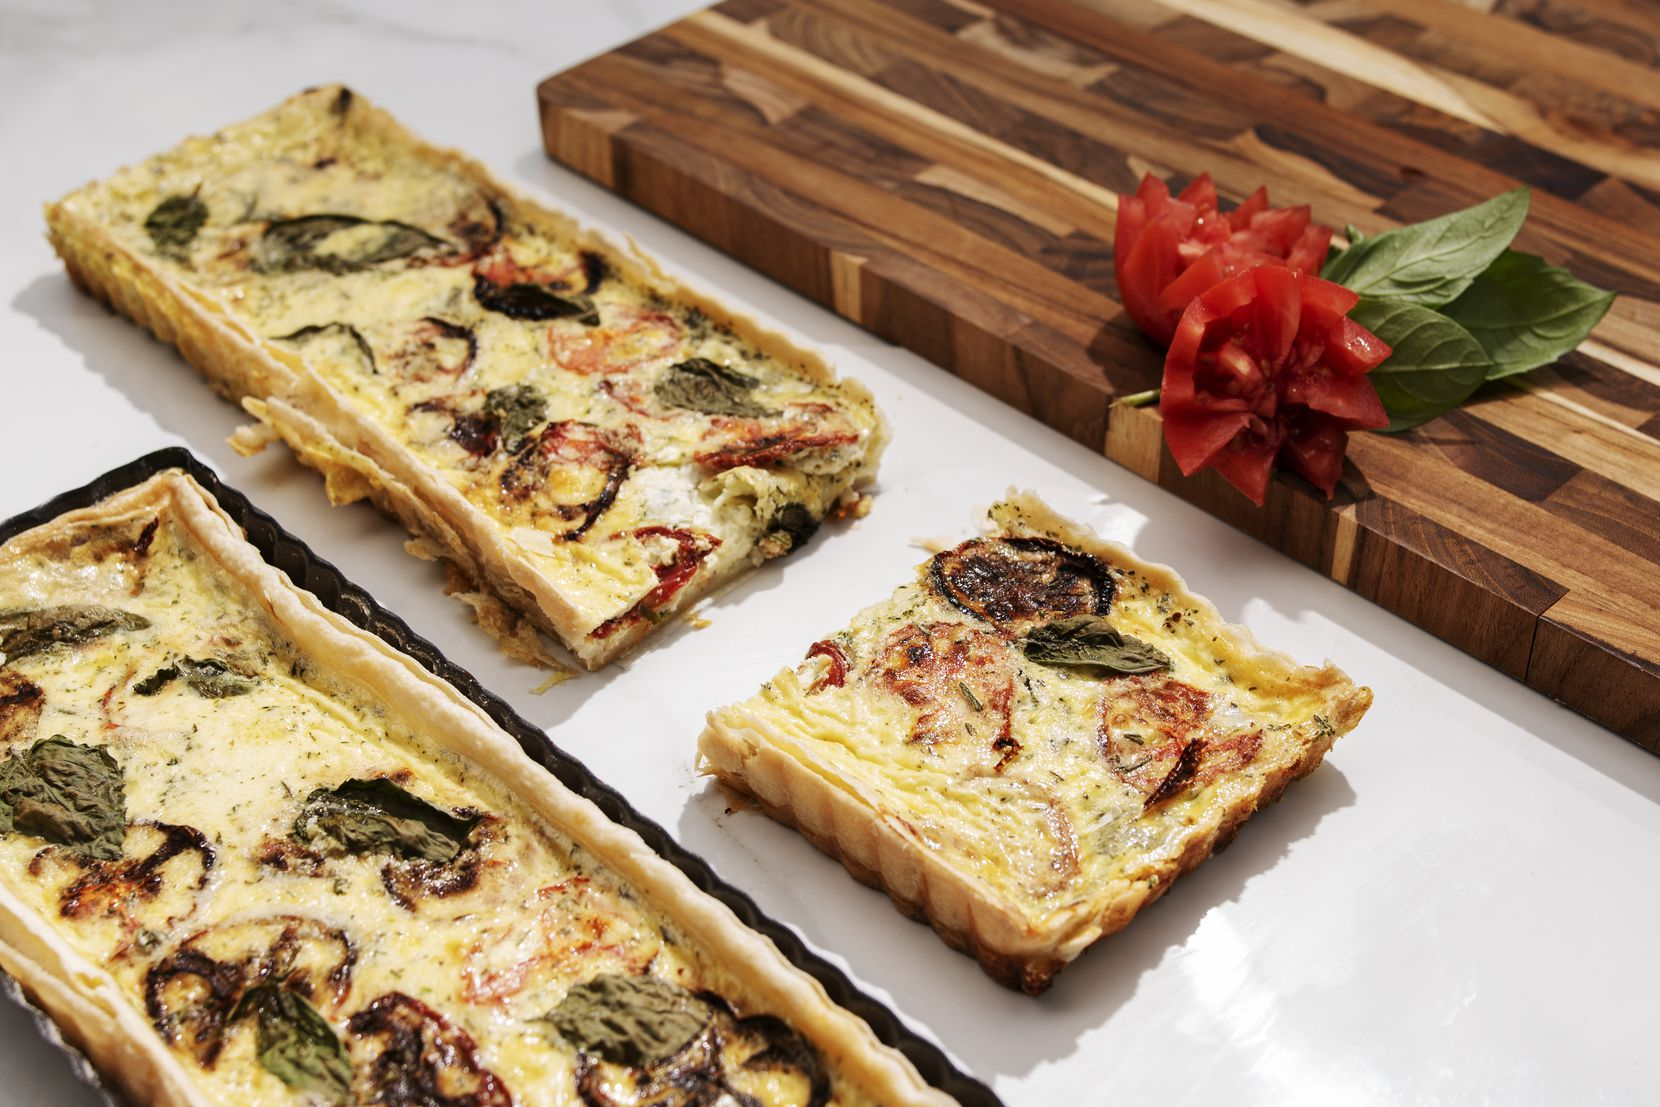 Quiche can come in a variety of shapes and sizes.